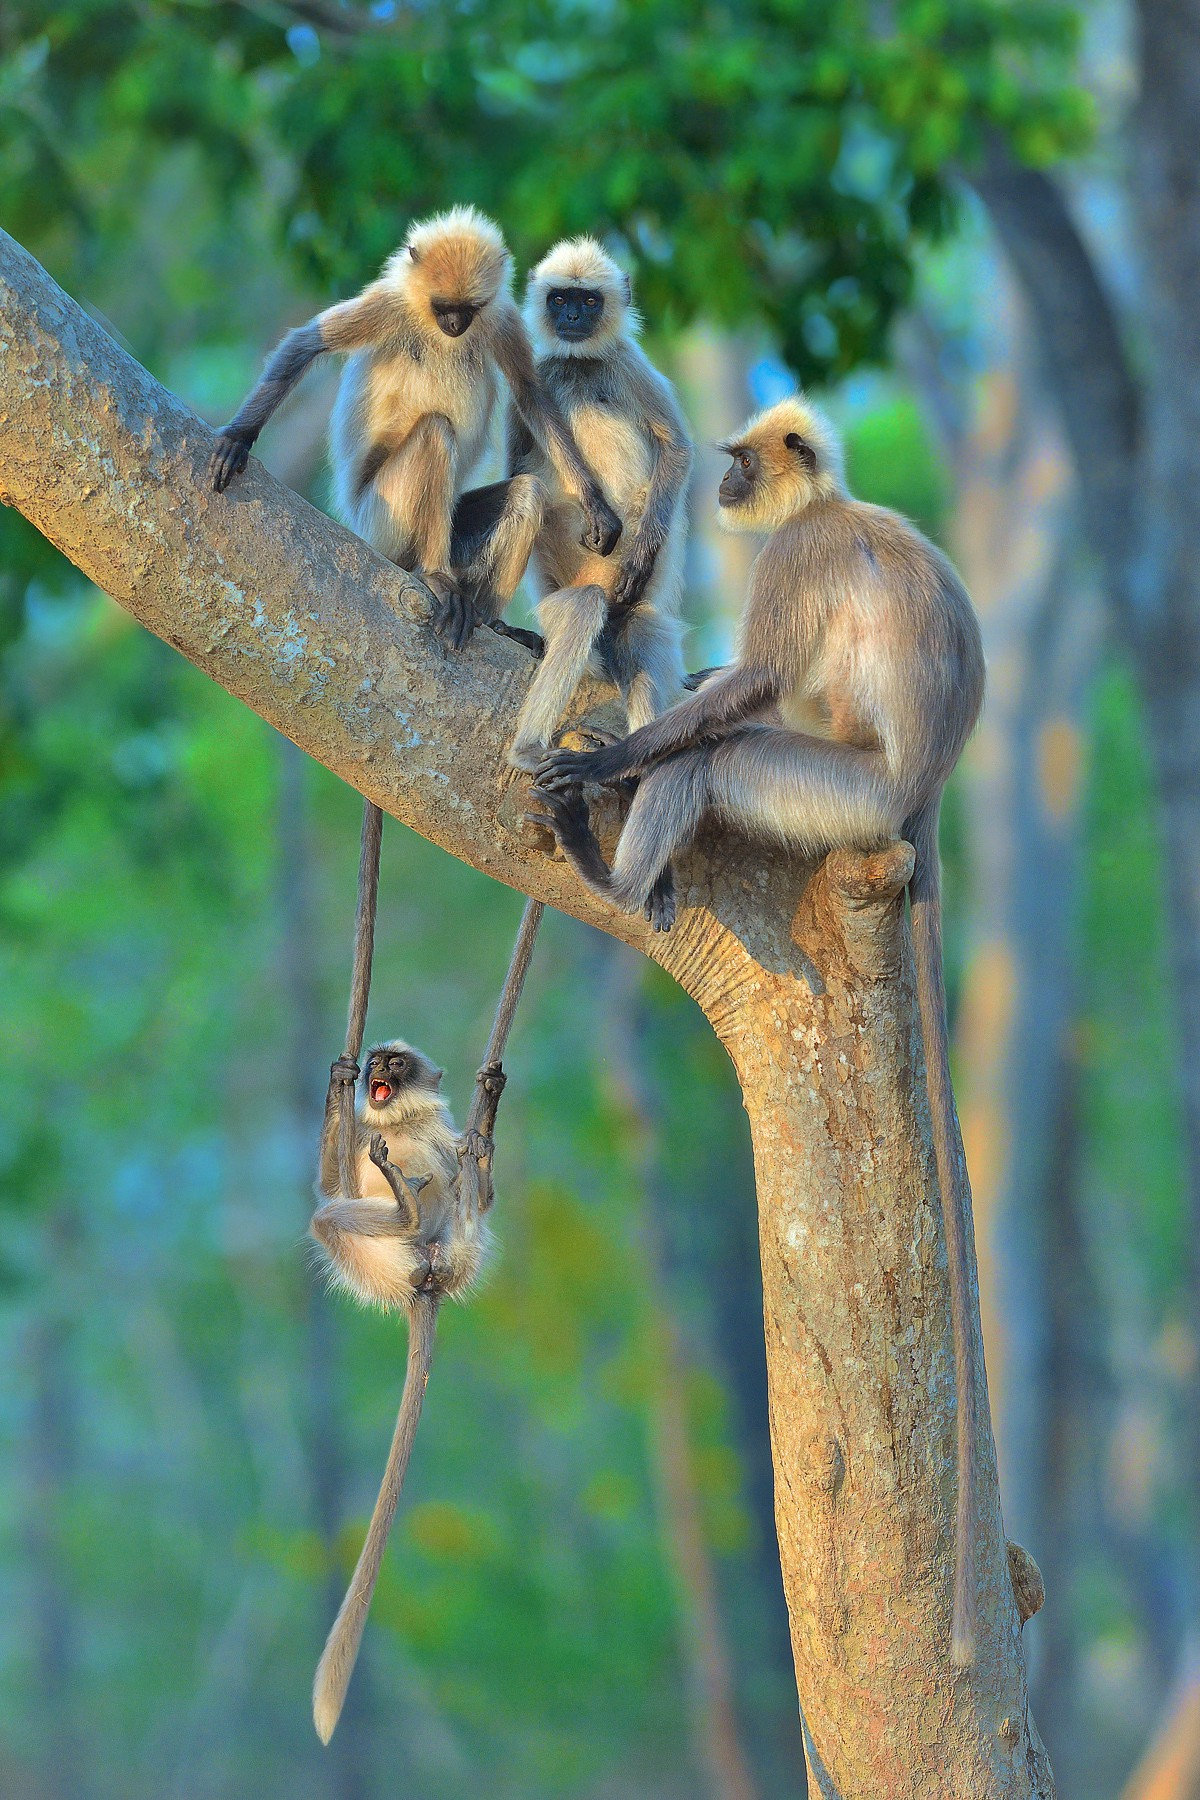 A grey langur monkey holds and swings on two hanging tails of the siblings or friends in the tree above her